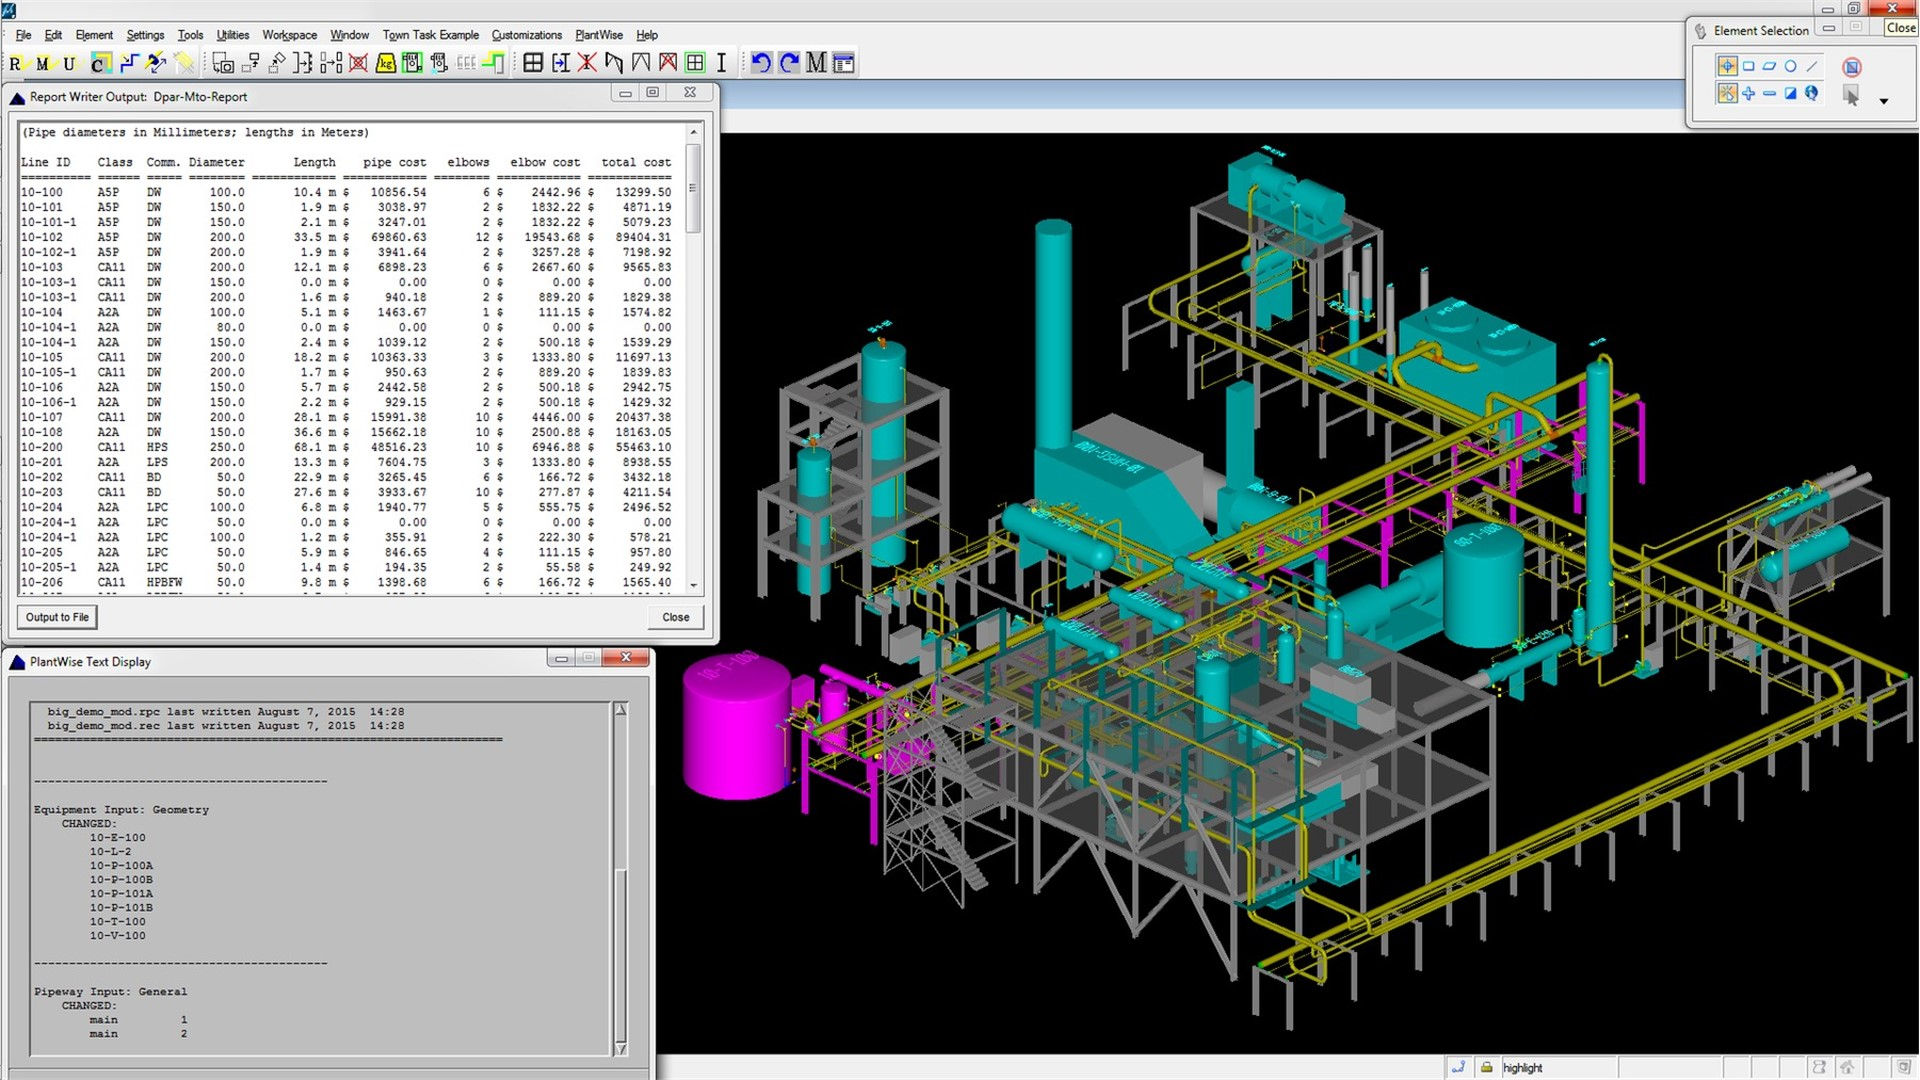 3d process plant design software ndash bentley plantwise piping layout and design pictures